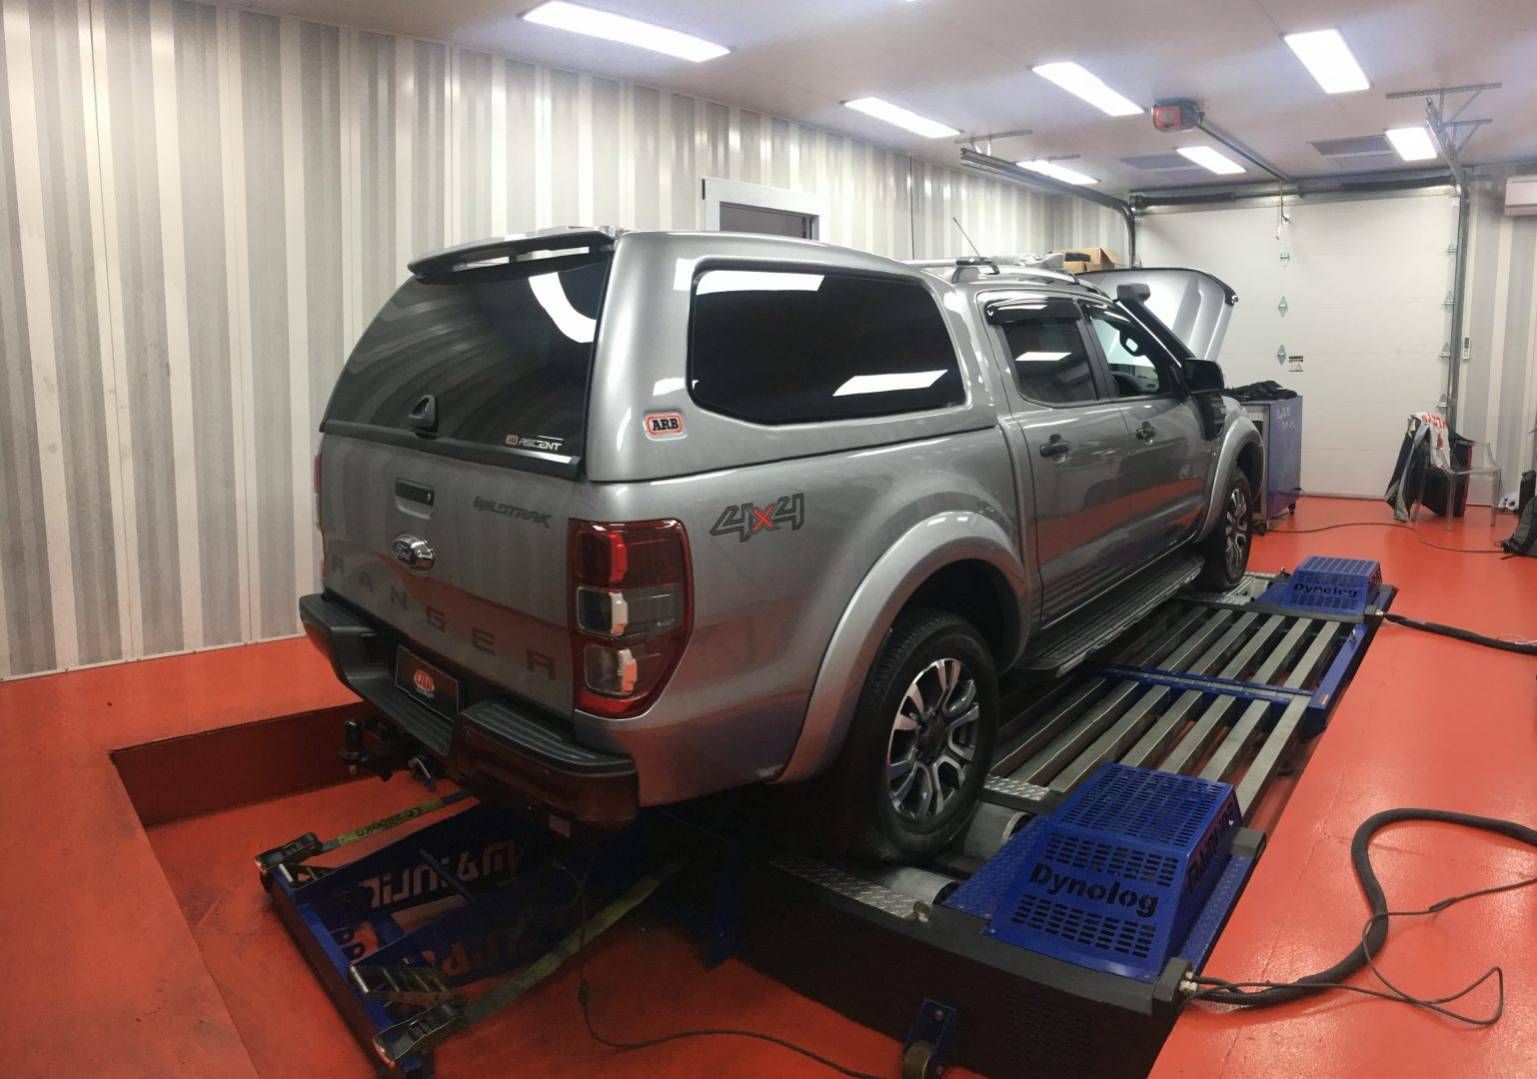 ecu remap ford ranger 3 2l 2017 auto ecu remap tuning diesel tuning australia. Black Bedroom Furniture Sets. Home Design Ideas